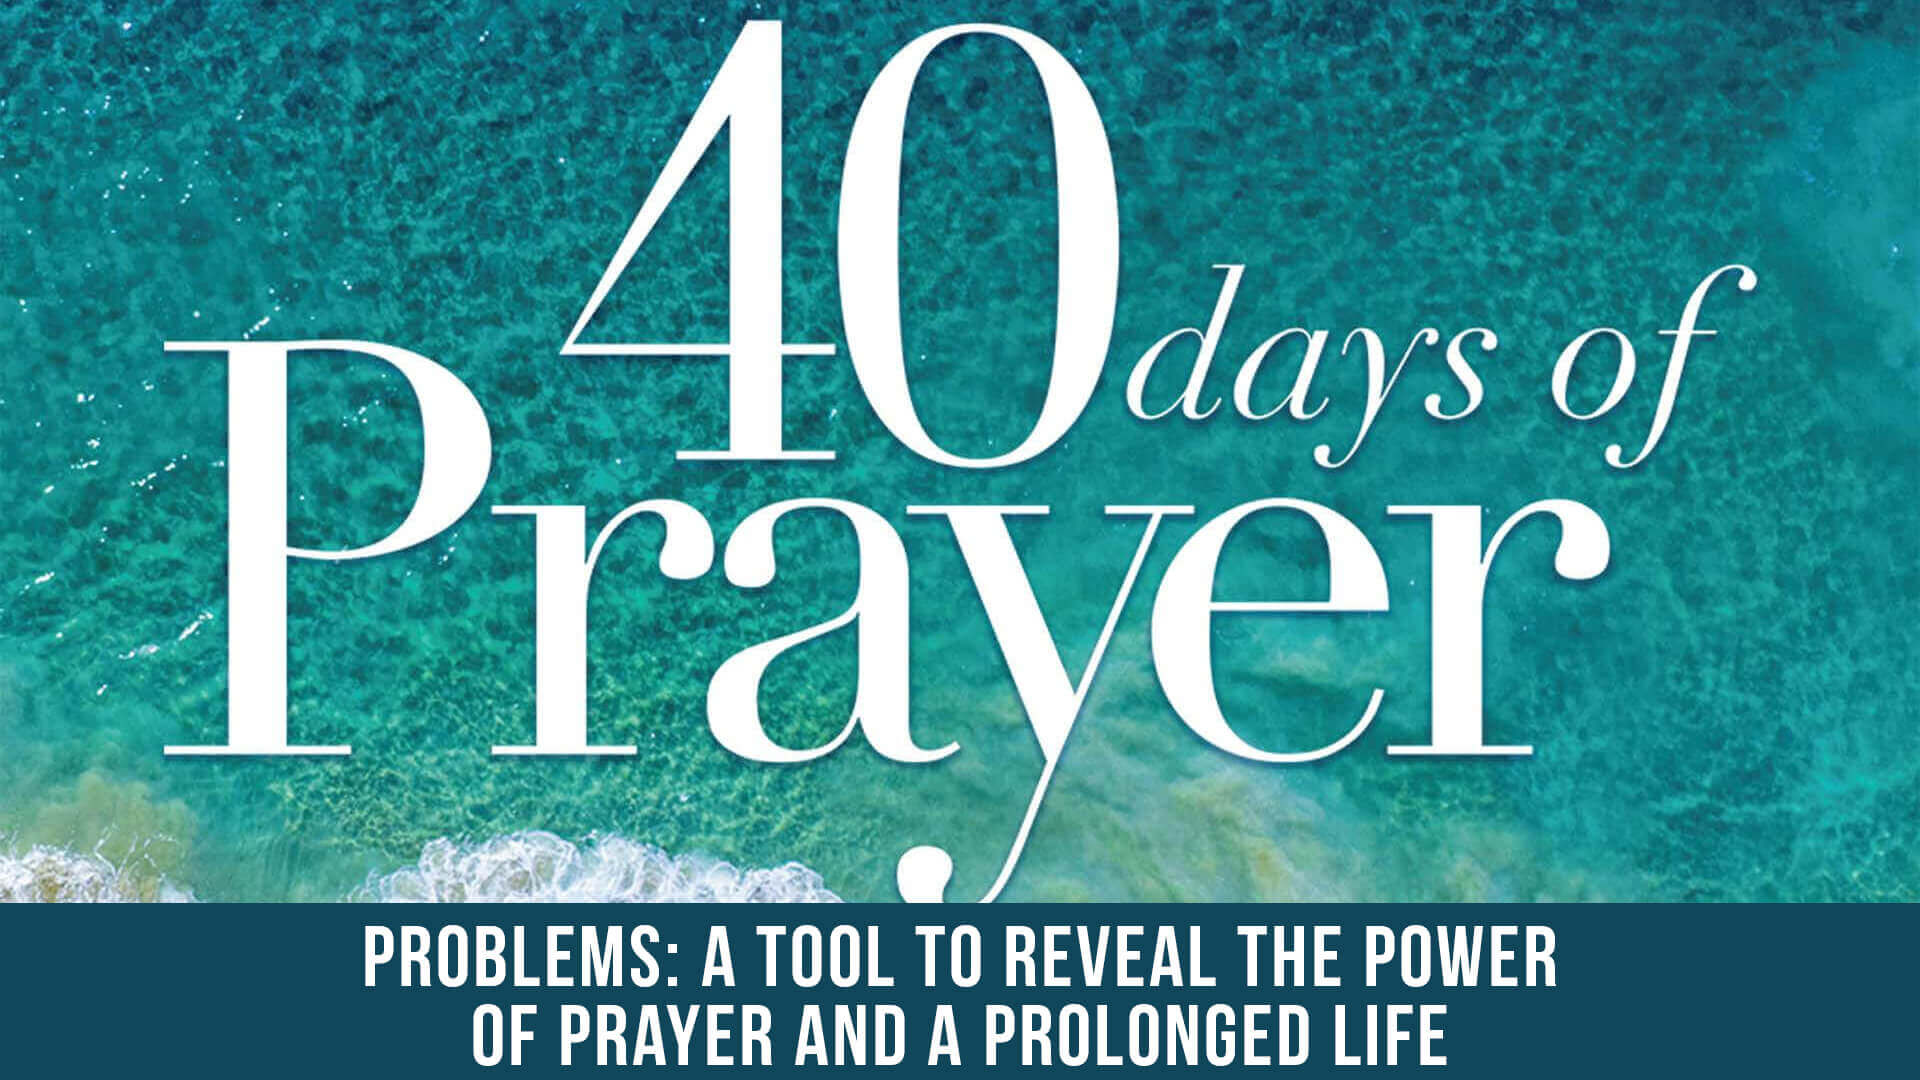 Problems - A Tool to Reveal the Power of Prayer and